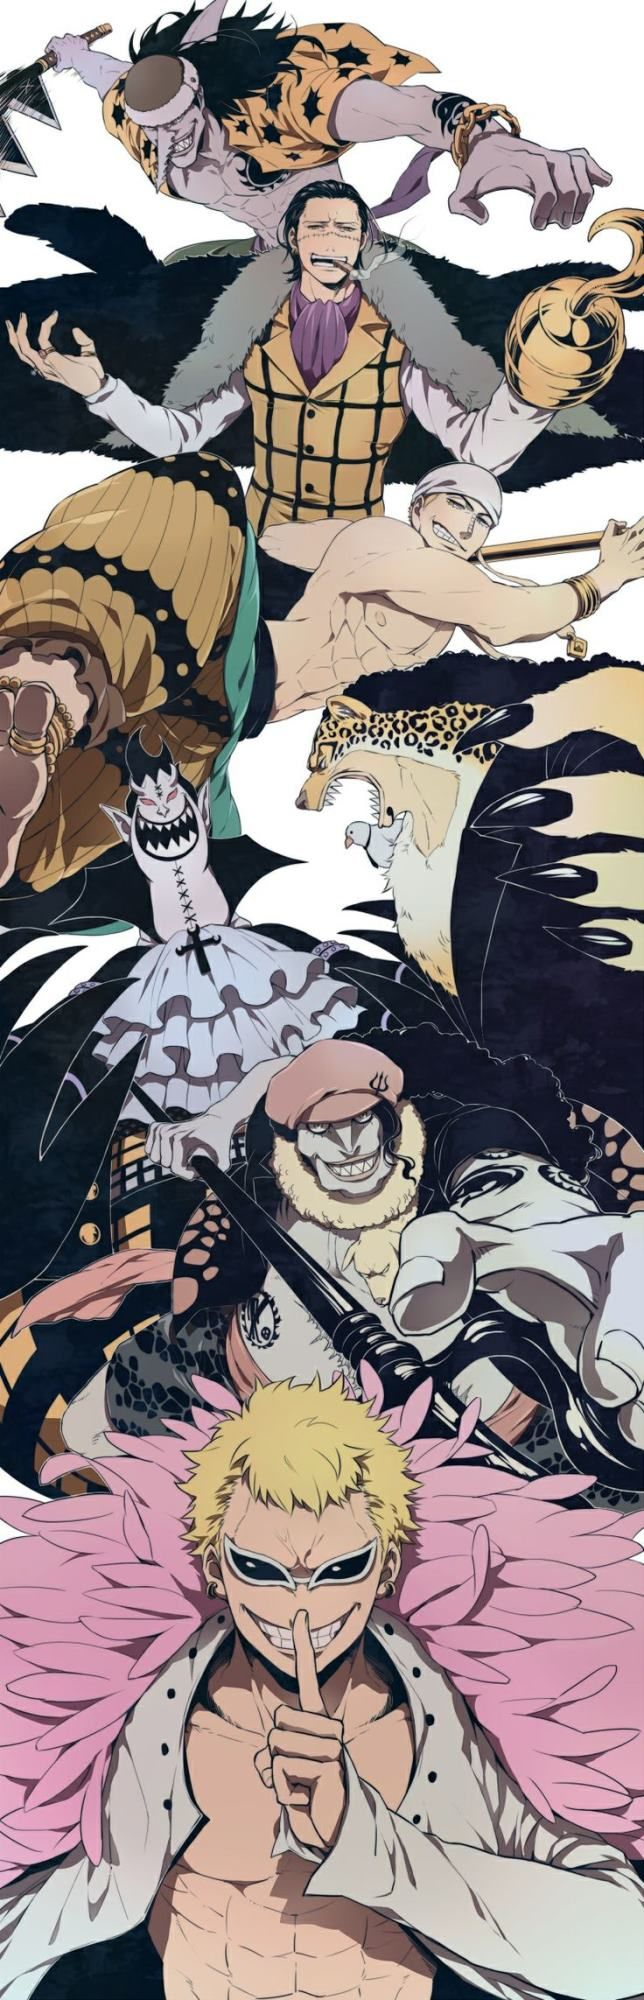 ONE PIECE, Strong Boss, Arlong, Crocodile, Enel,  Rob Lucci, Gecko Moria, Hody Jones, Donquixote Doflamingo http://amzn.to/2tOEmSw